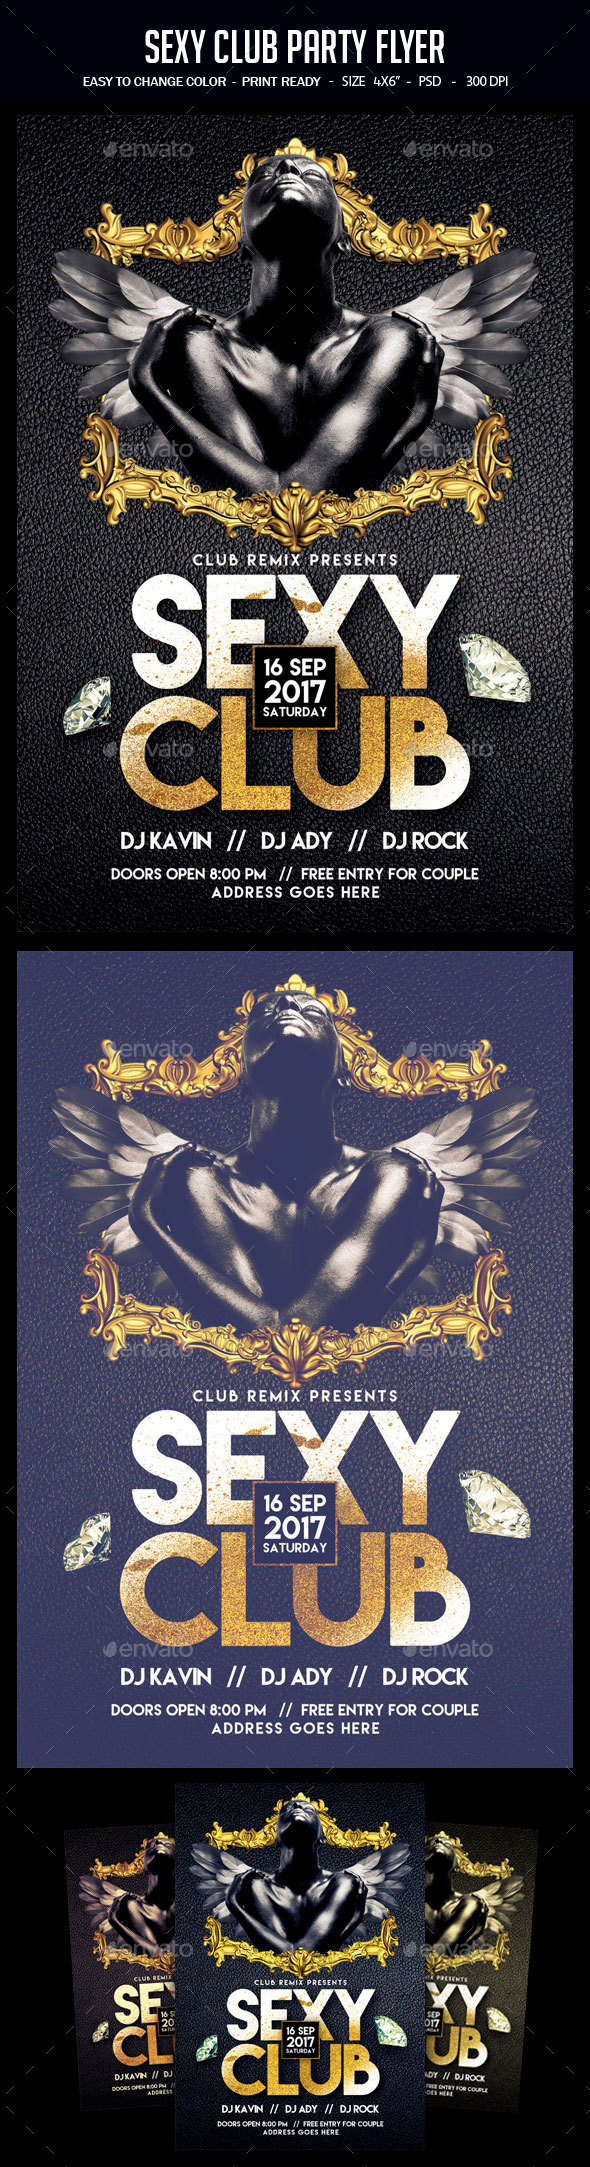 Sexy Club Party Flyer